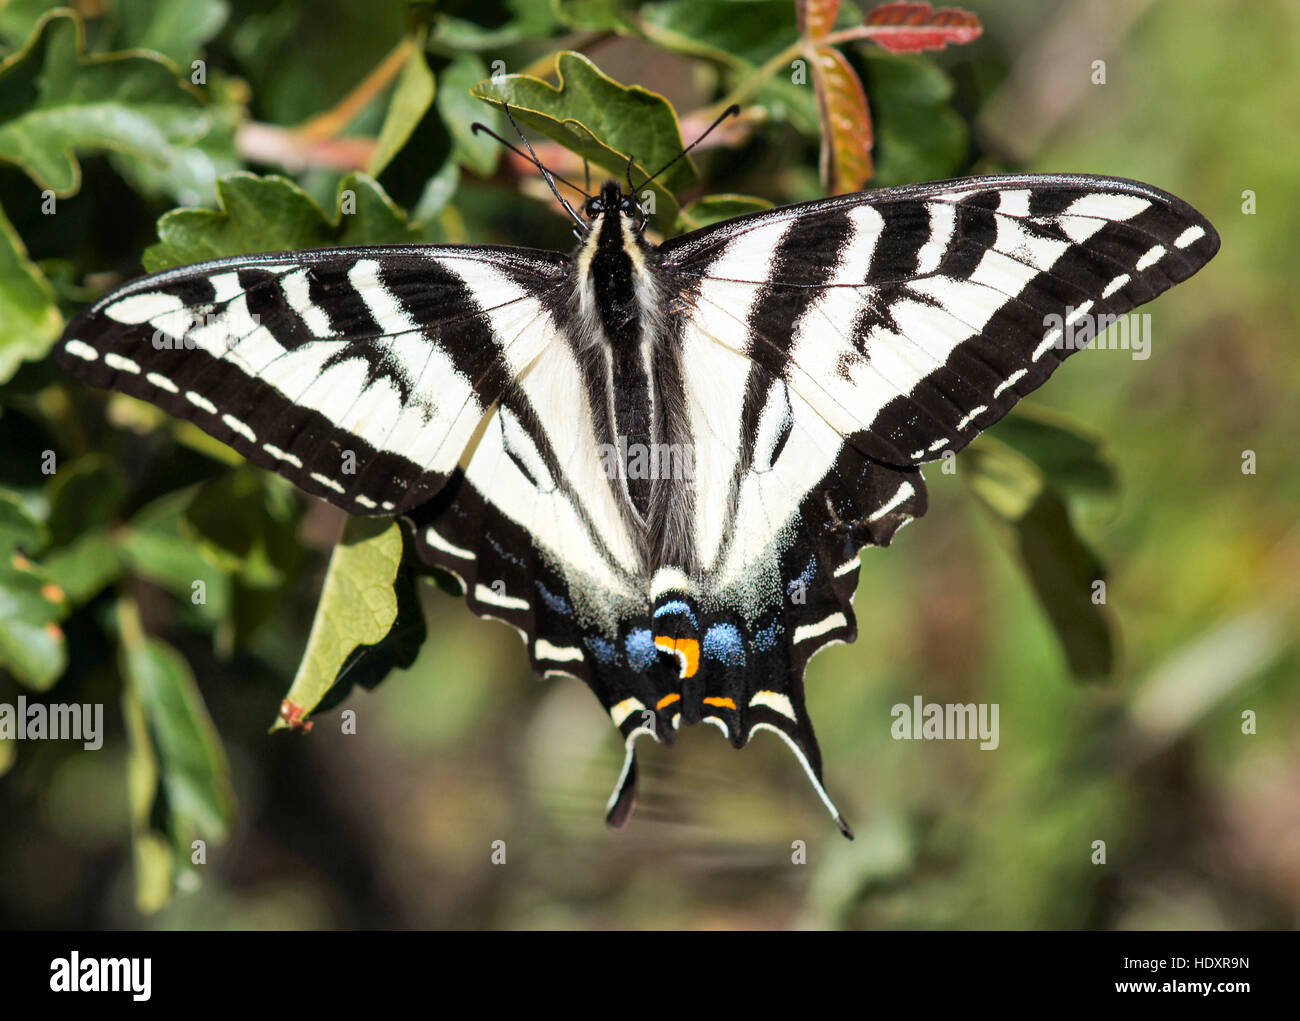 Pale Swallowtail (Papilio eurymedon) butterfly perched on tree - Stock Image